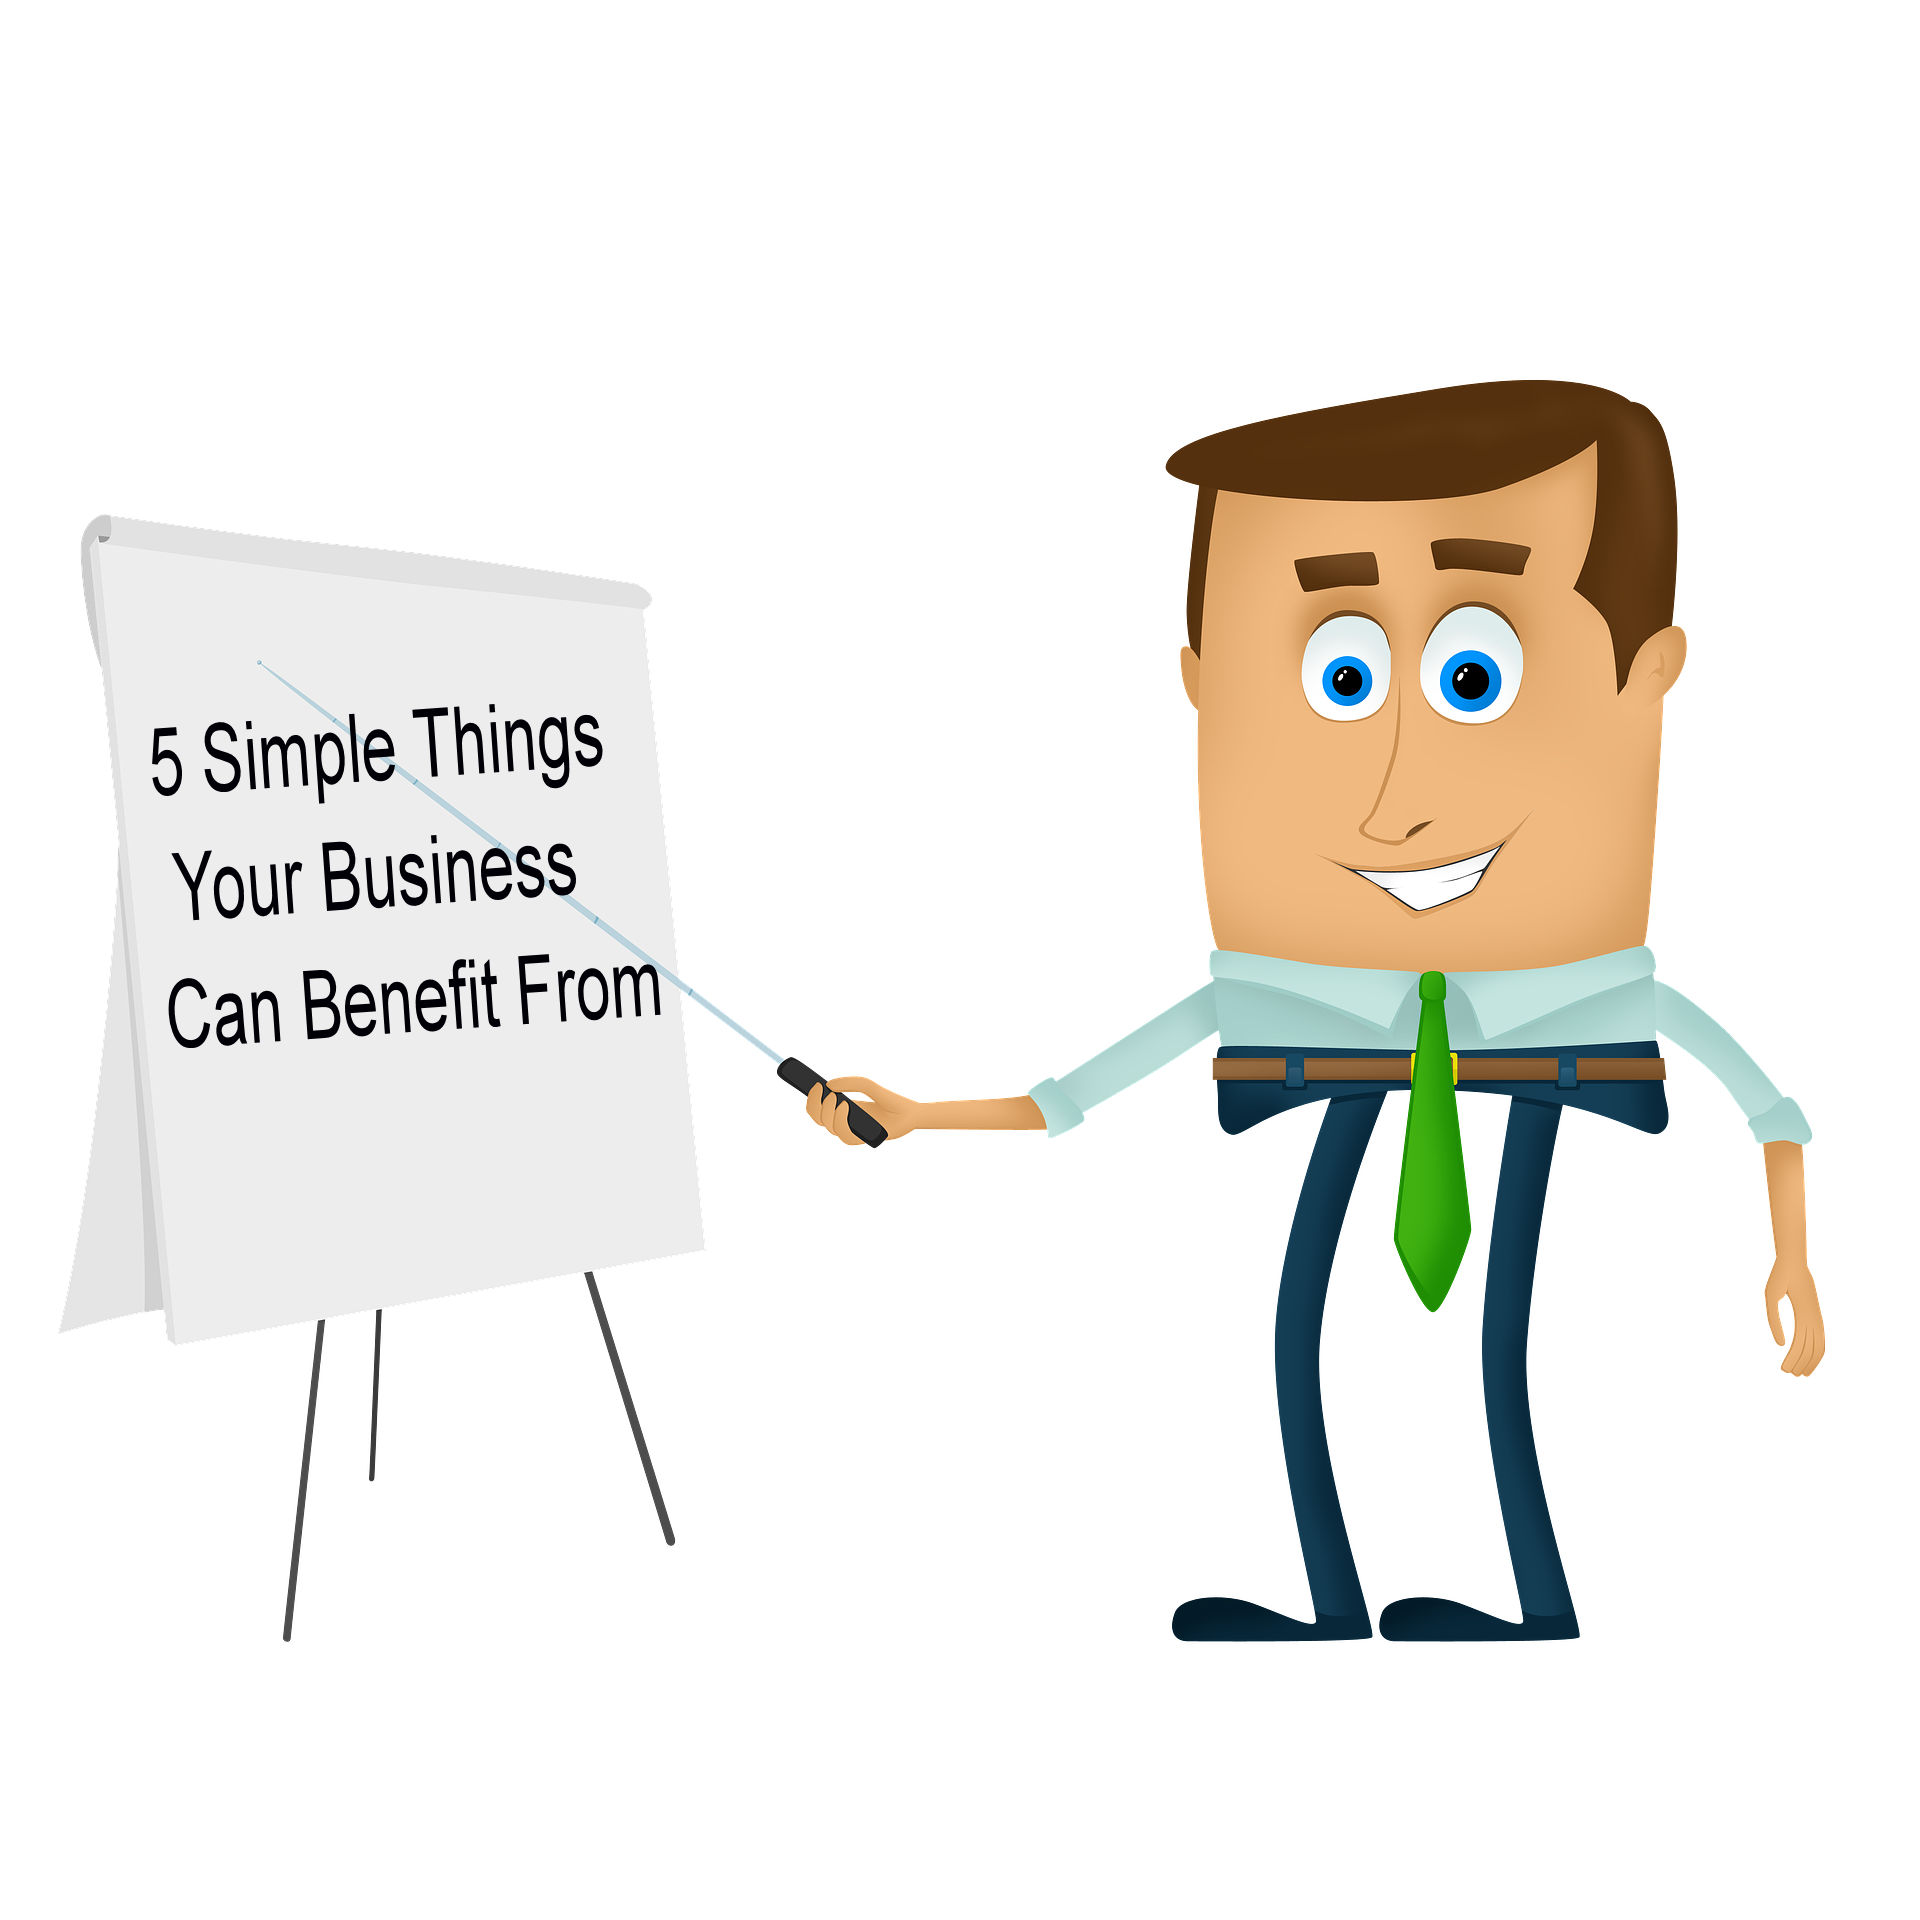 5 Simple Things Your Business Can Benefit From